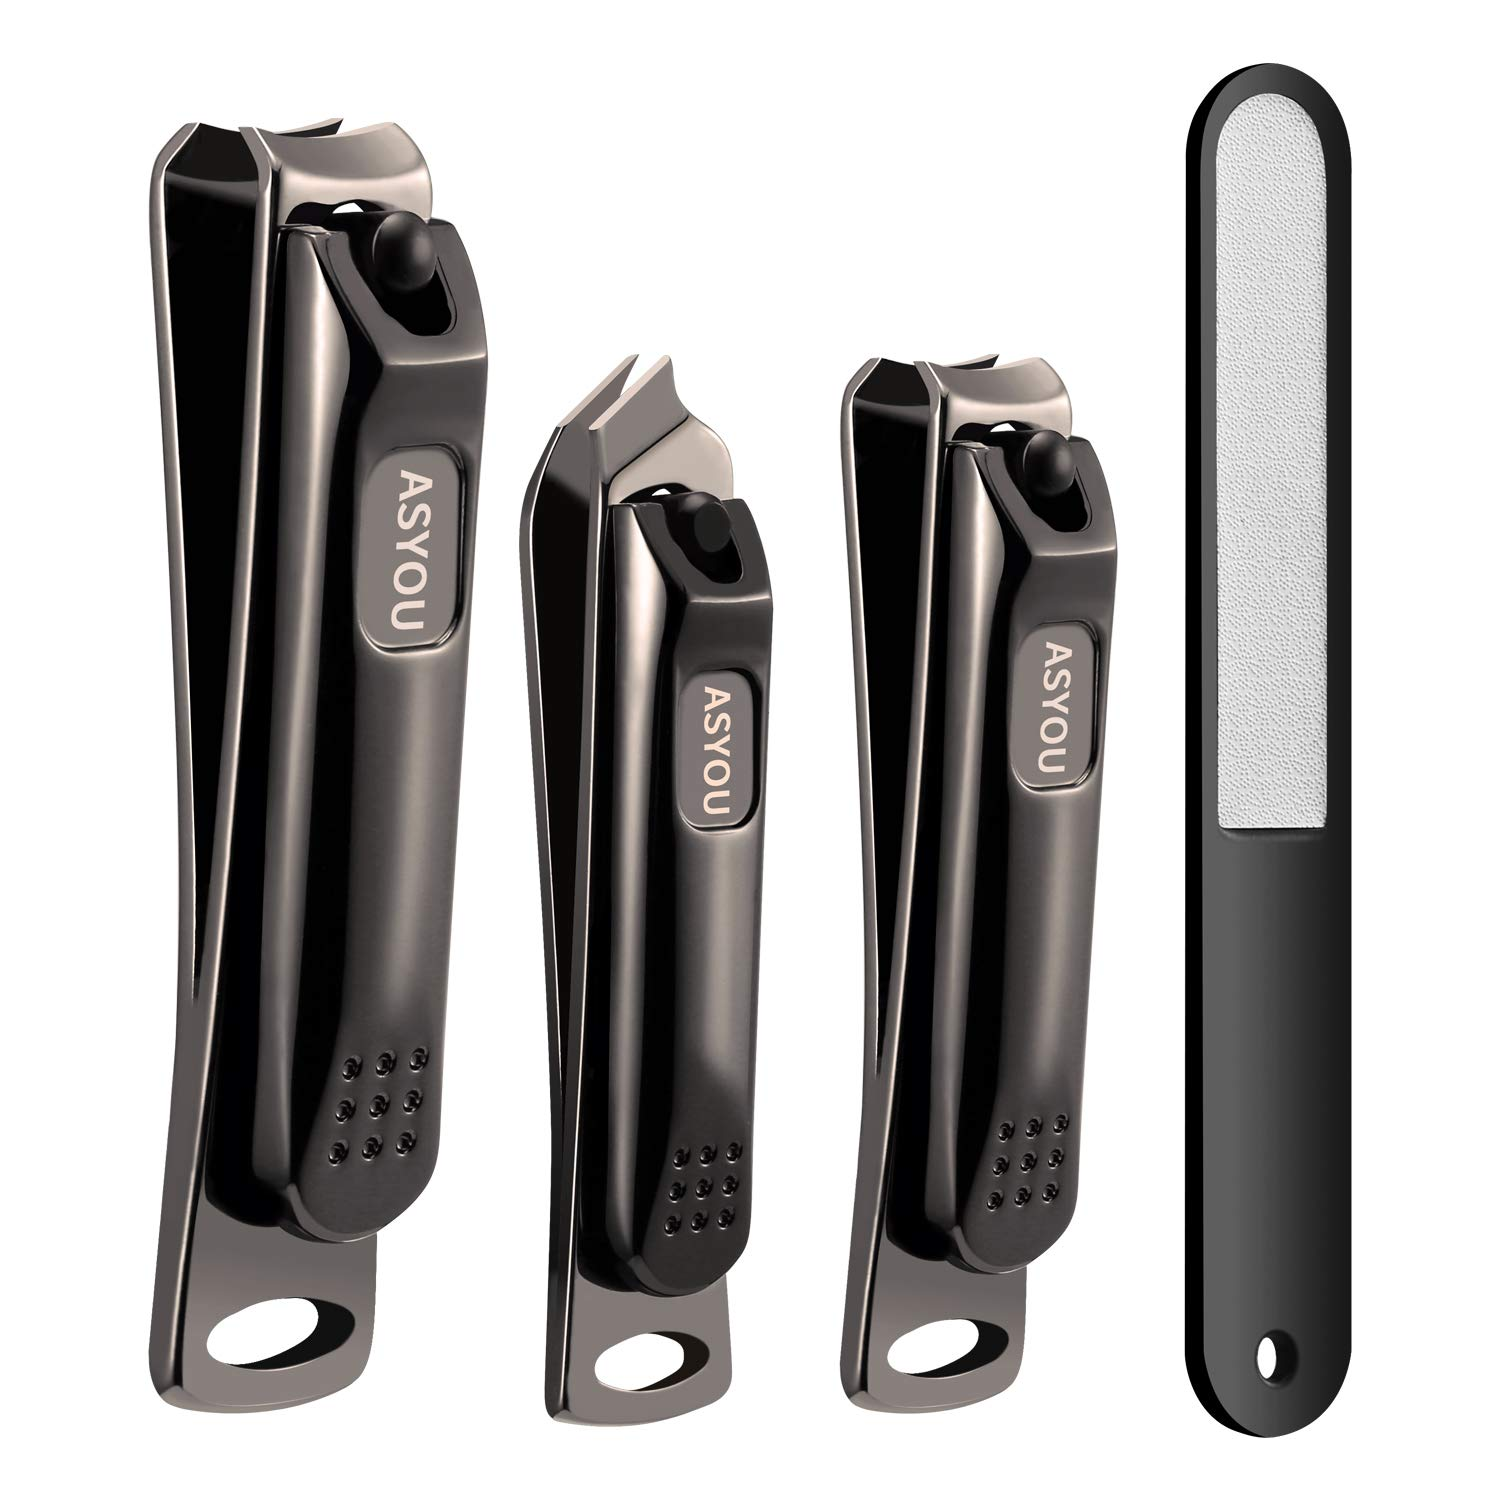 ASYOU Nail Clippers Set, Black Nail Clippers,Toenail Clipper, Beveled nail Clippers, Stainless Steel, Good Gift for Women and Men (4 PCS) by ASYOU